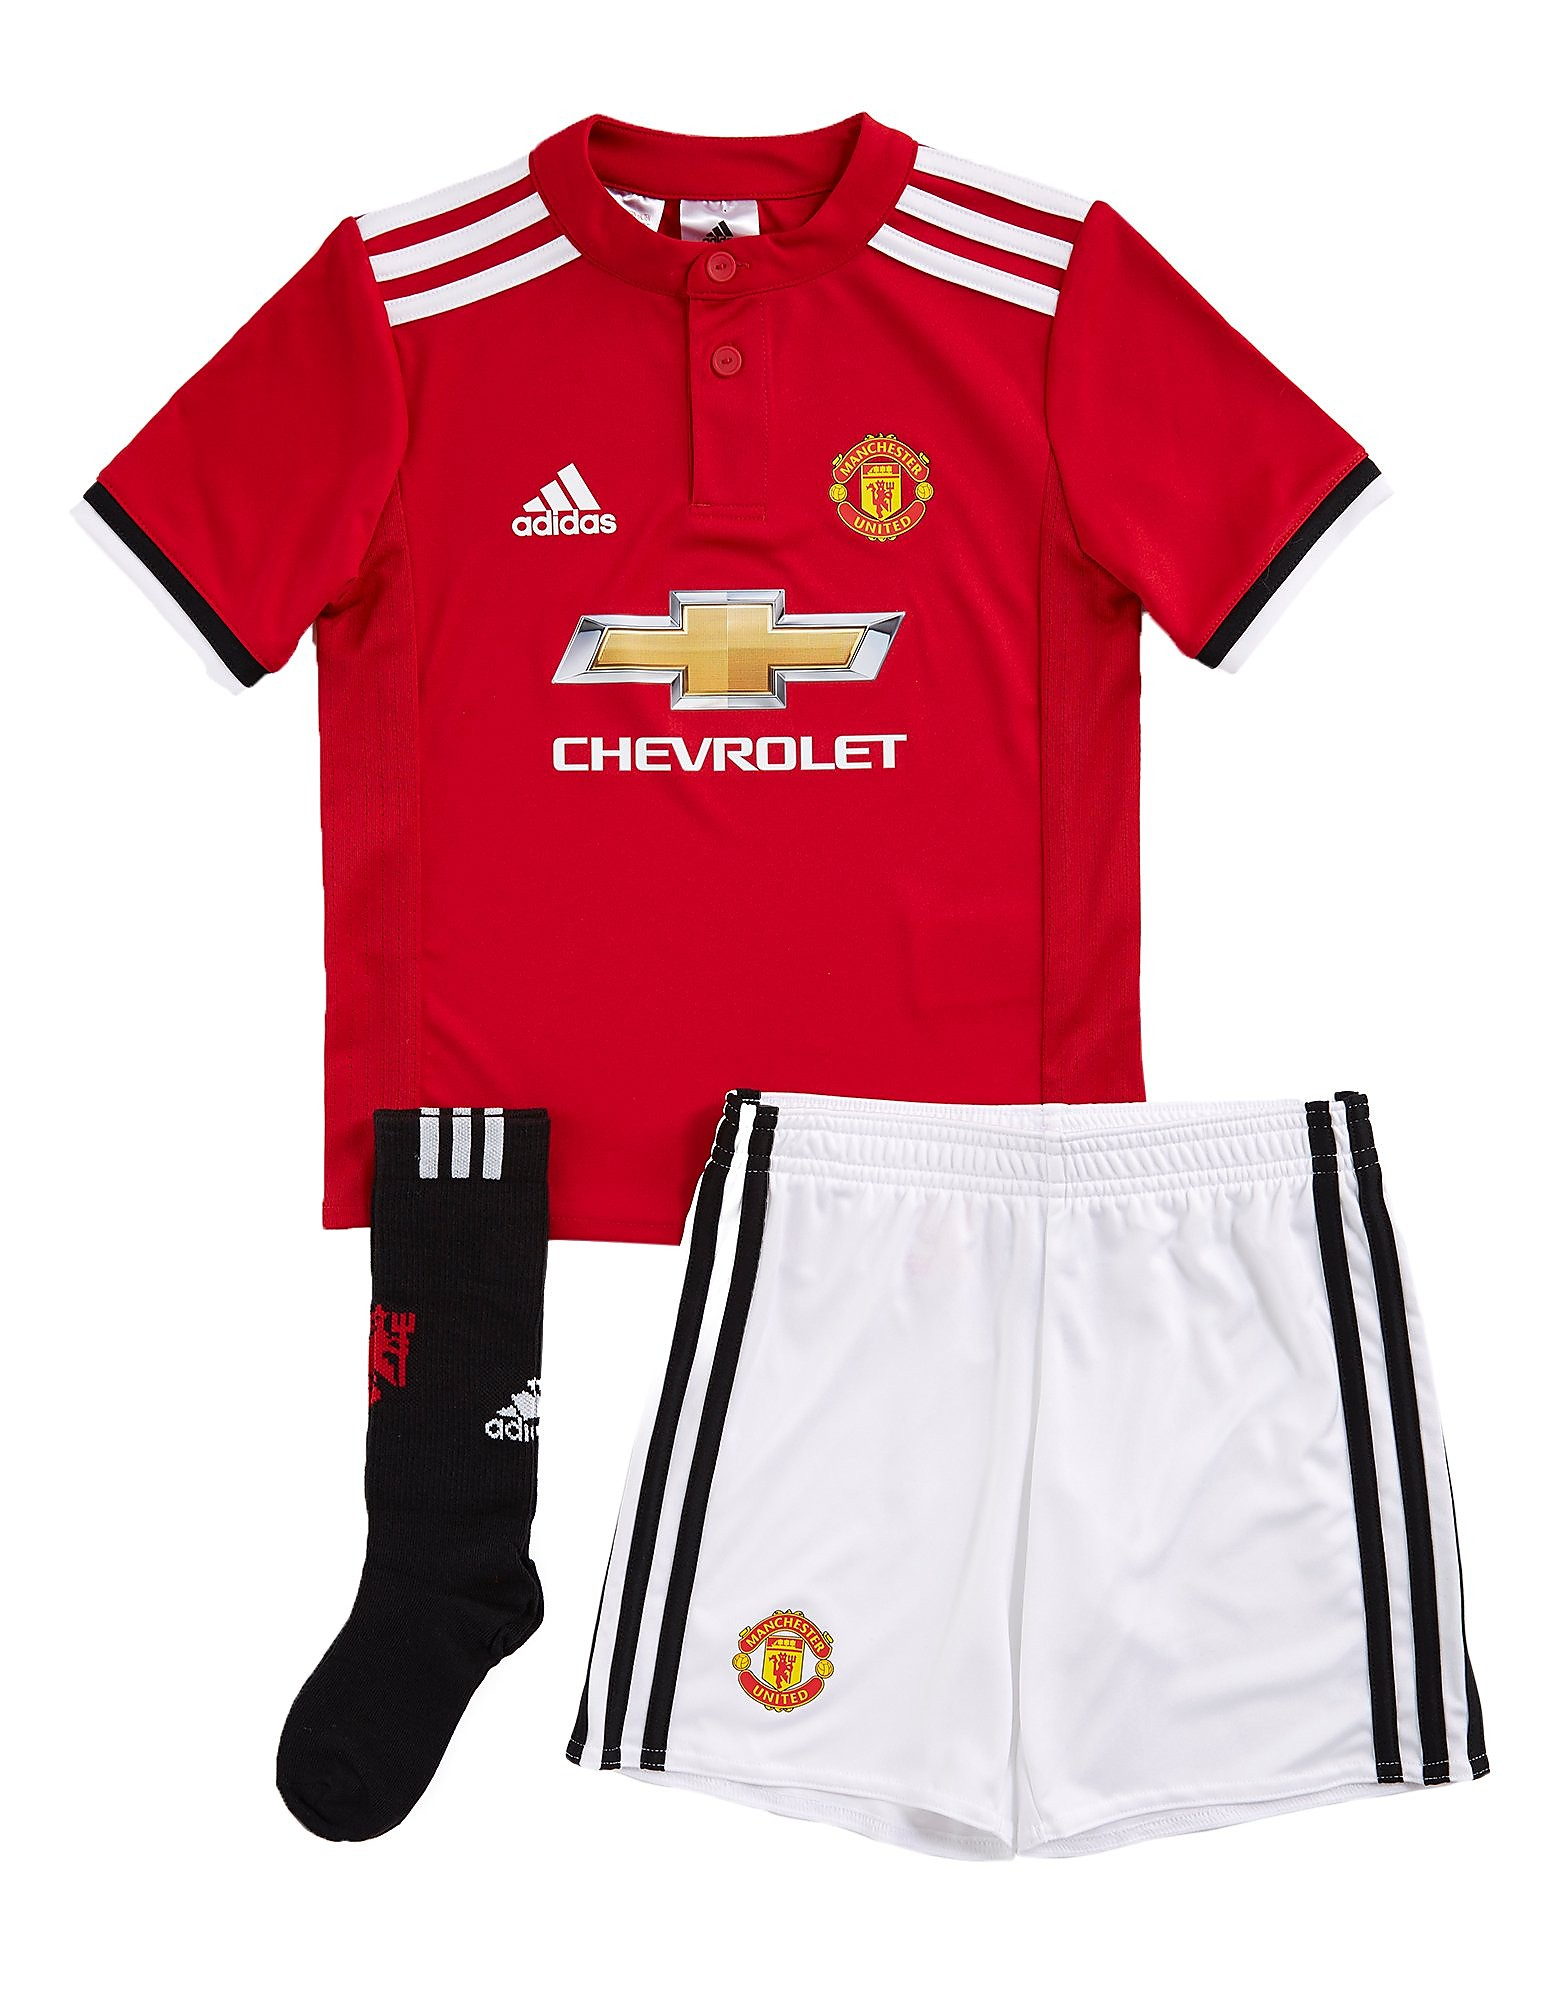 adidas Manchester United 2017/18 Home Kit Childen's